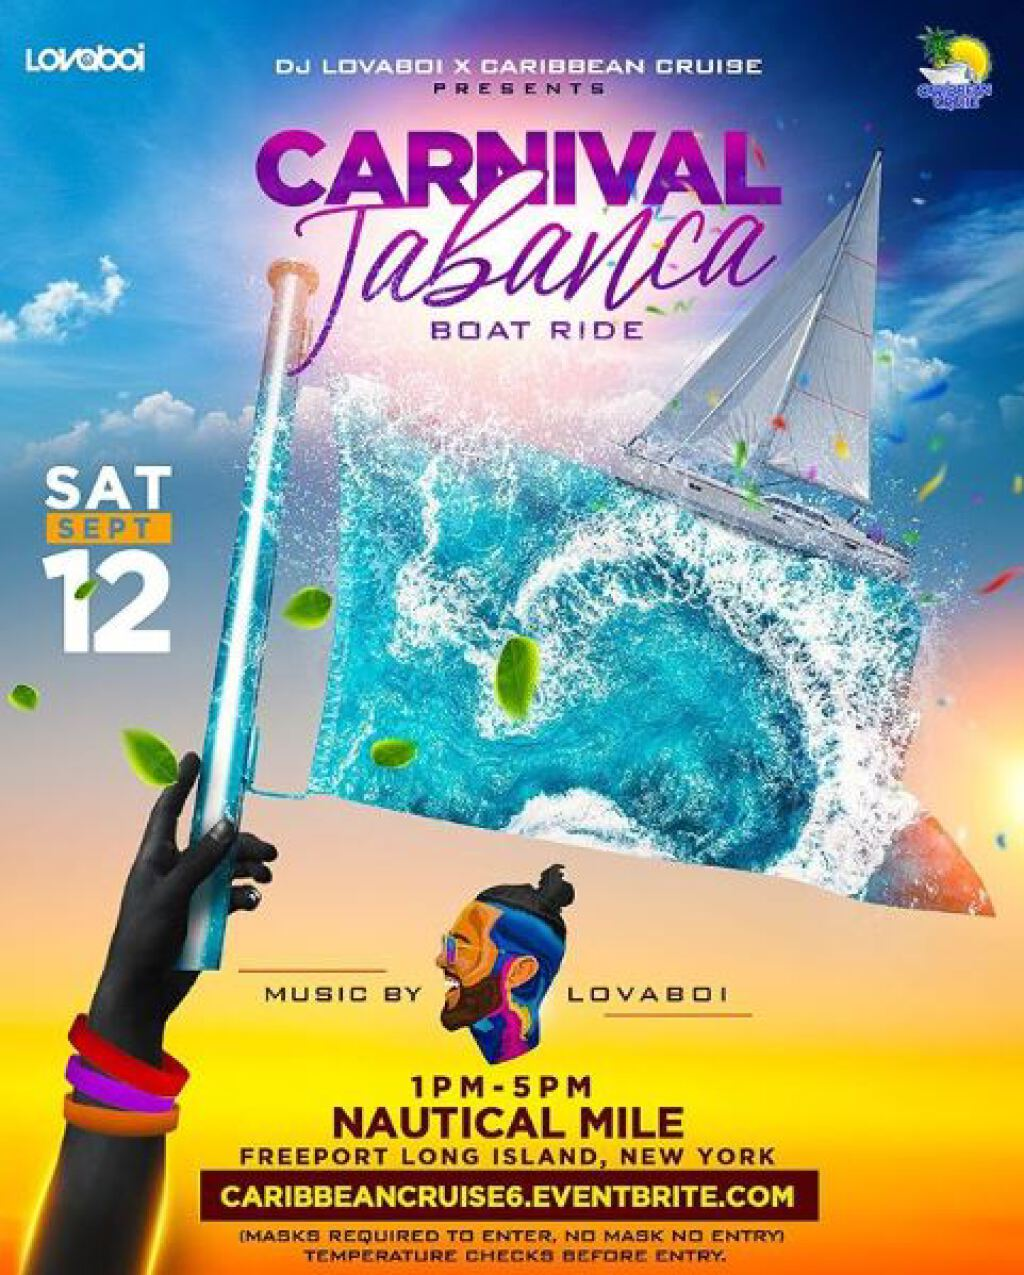 Carnival Tabanca flyer or graphic.